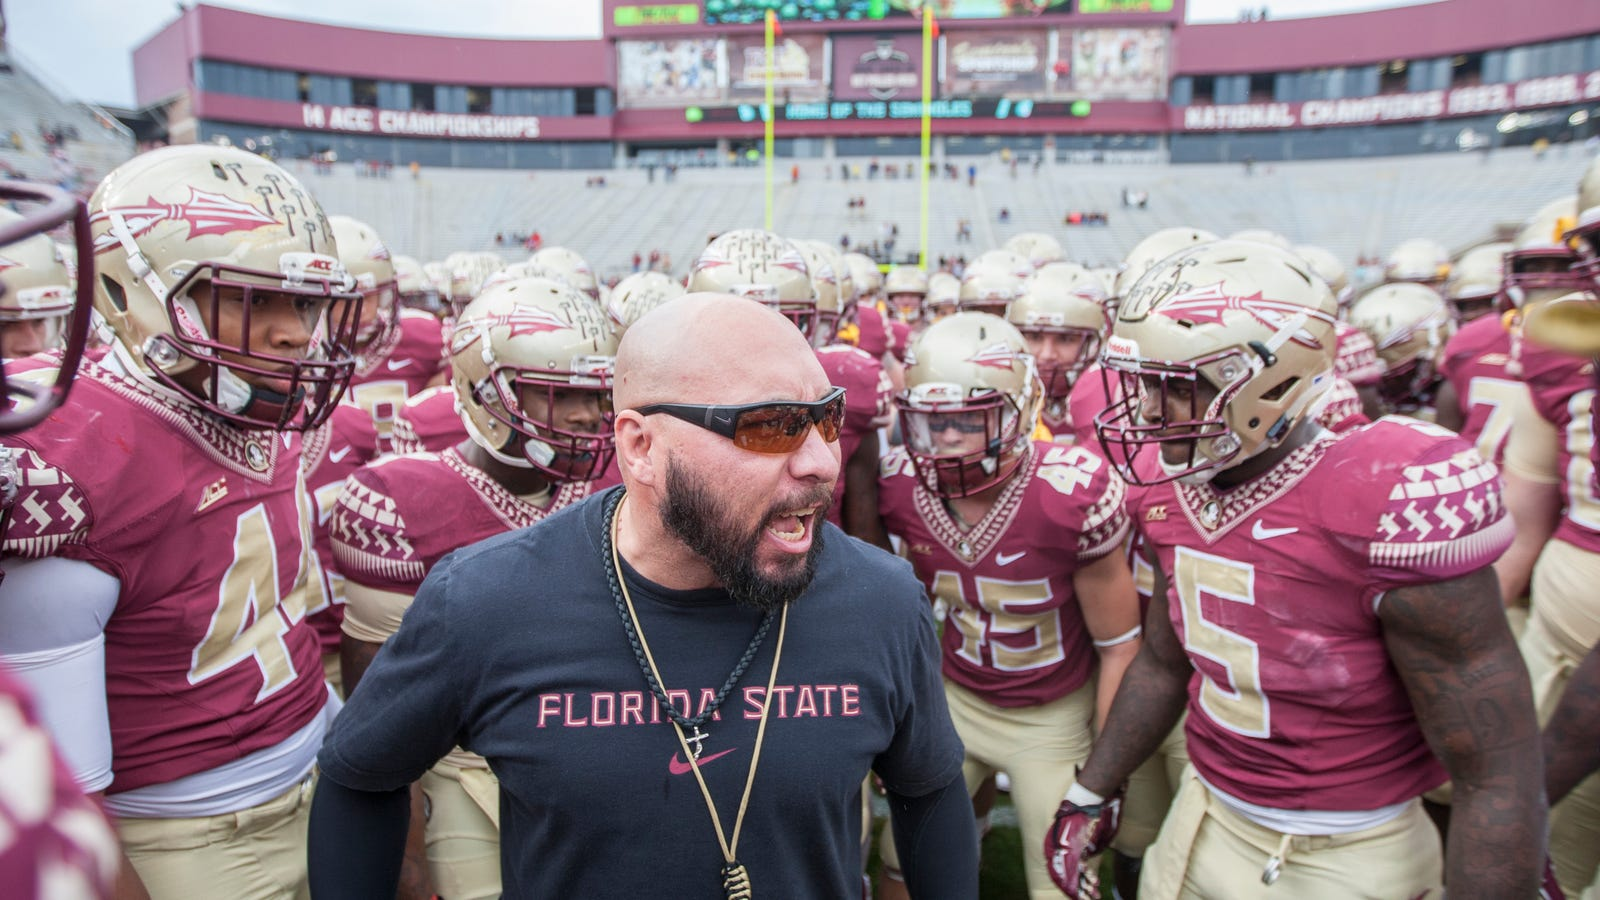 Florida State Strength Coach Found Asleep At Wheel, Arrested For DUI